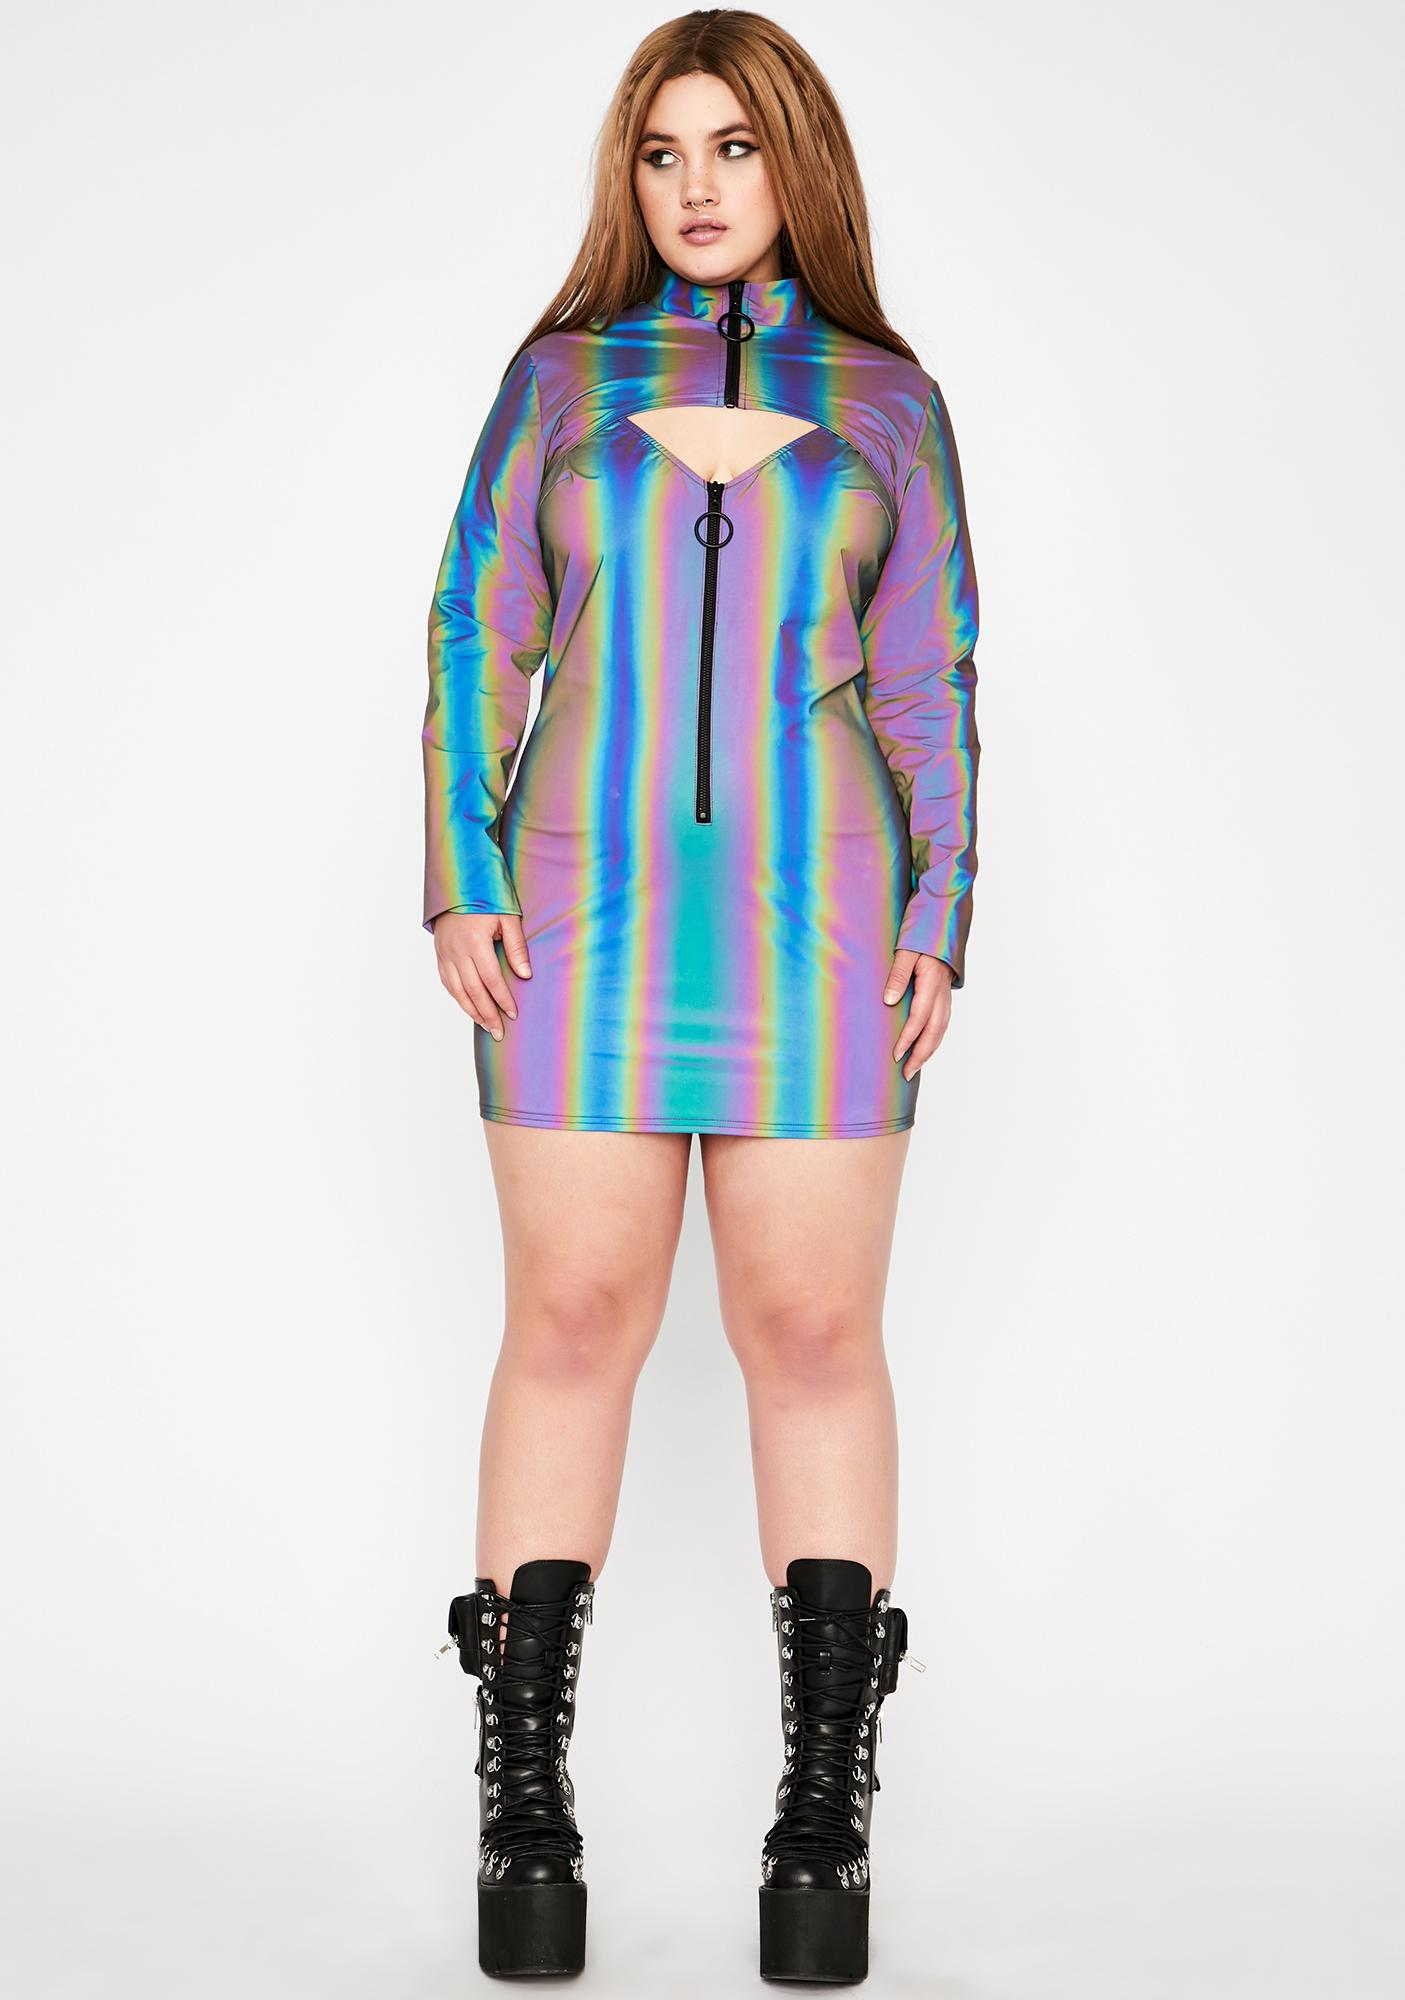 Club Exx High Spectral Frequency Reflective Shrug